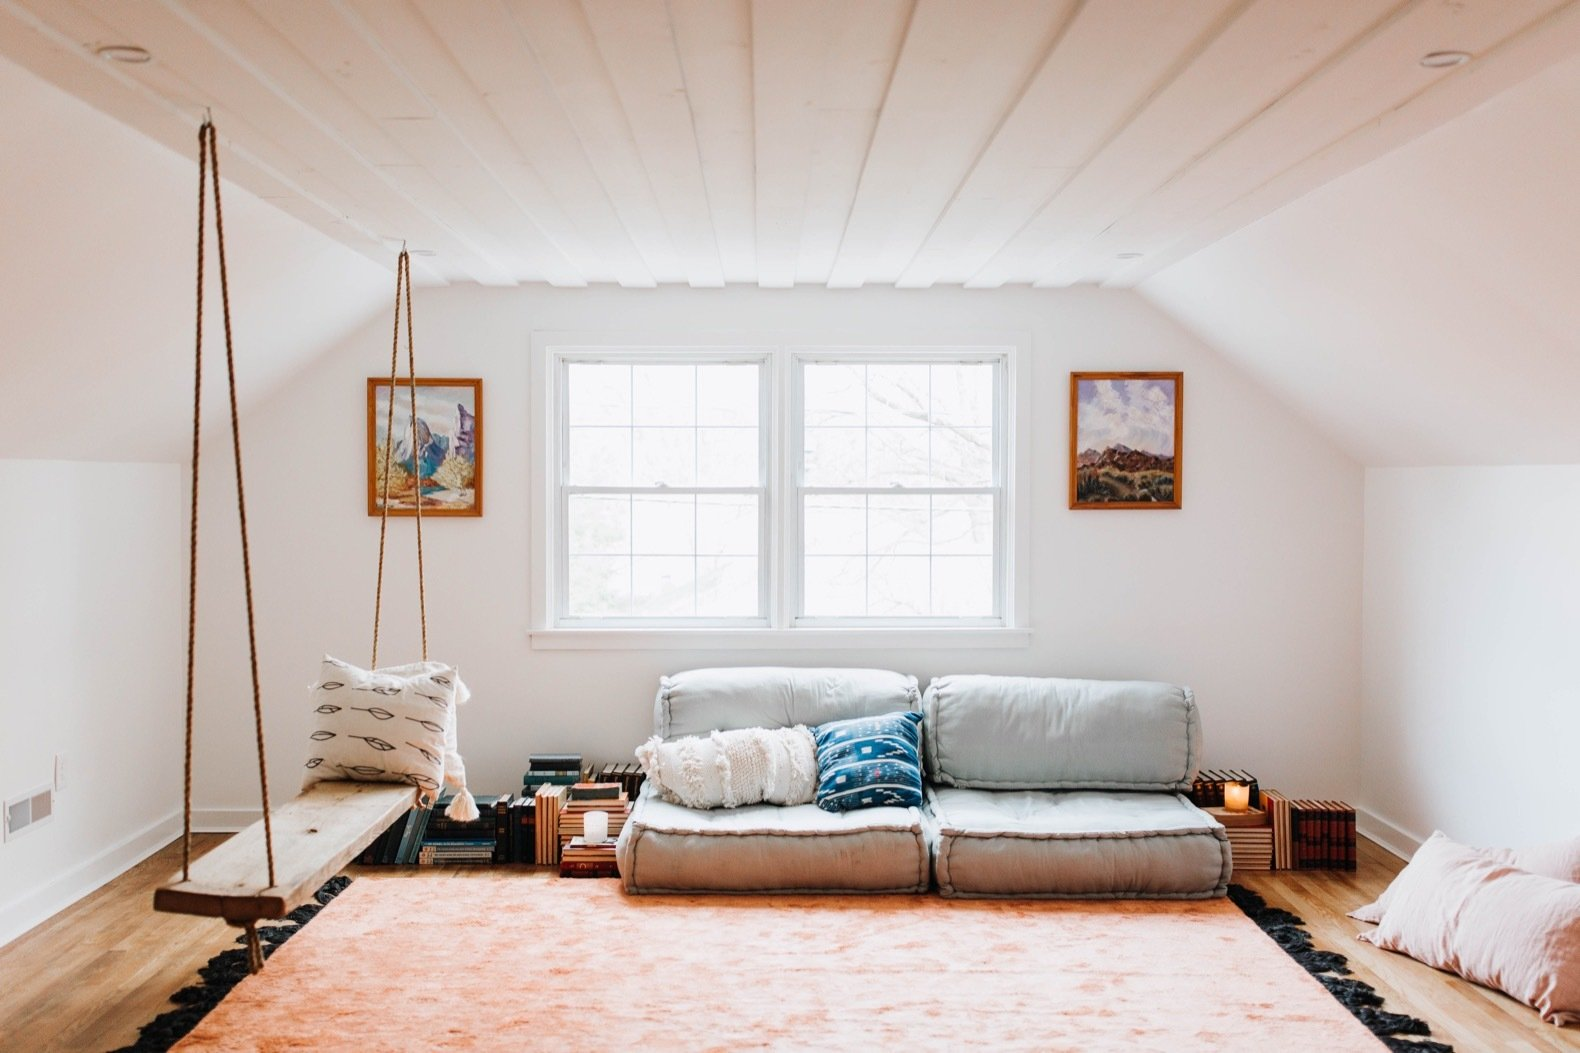 Living Room, Recessed Lighting, Sofa, Medium Hardwood Floor, Bench, and Rug Floor A limited budget restricted what Chris and Claude could do to the attic, but they managed to refinish the floors, change the lighting, and repaint the walls Chantilly Lace by Benjamin Moore.